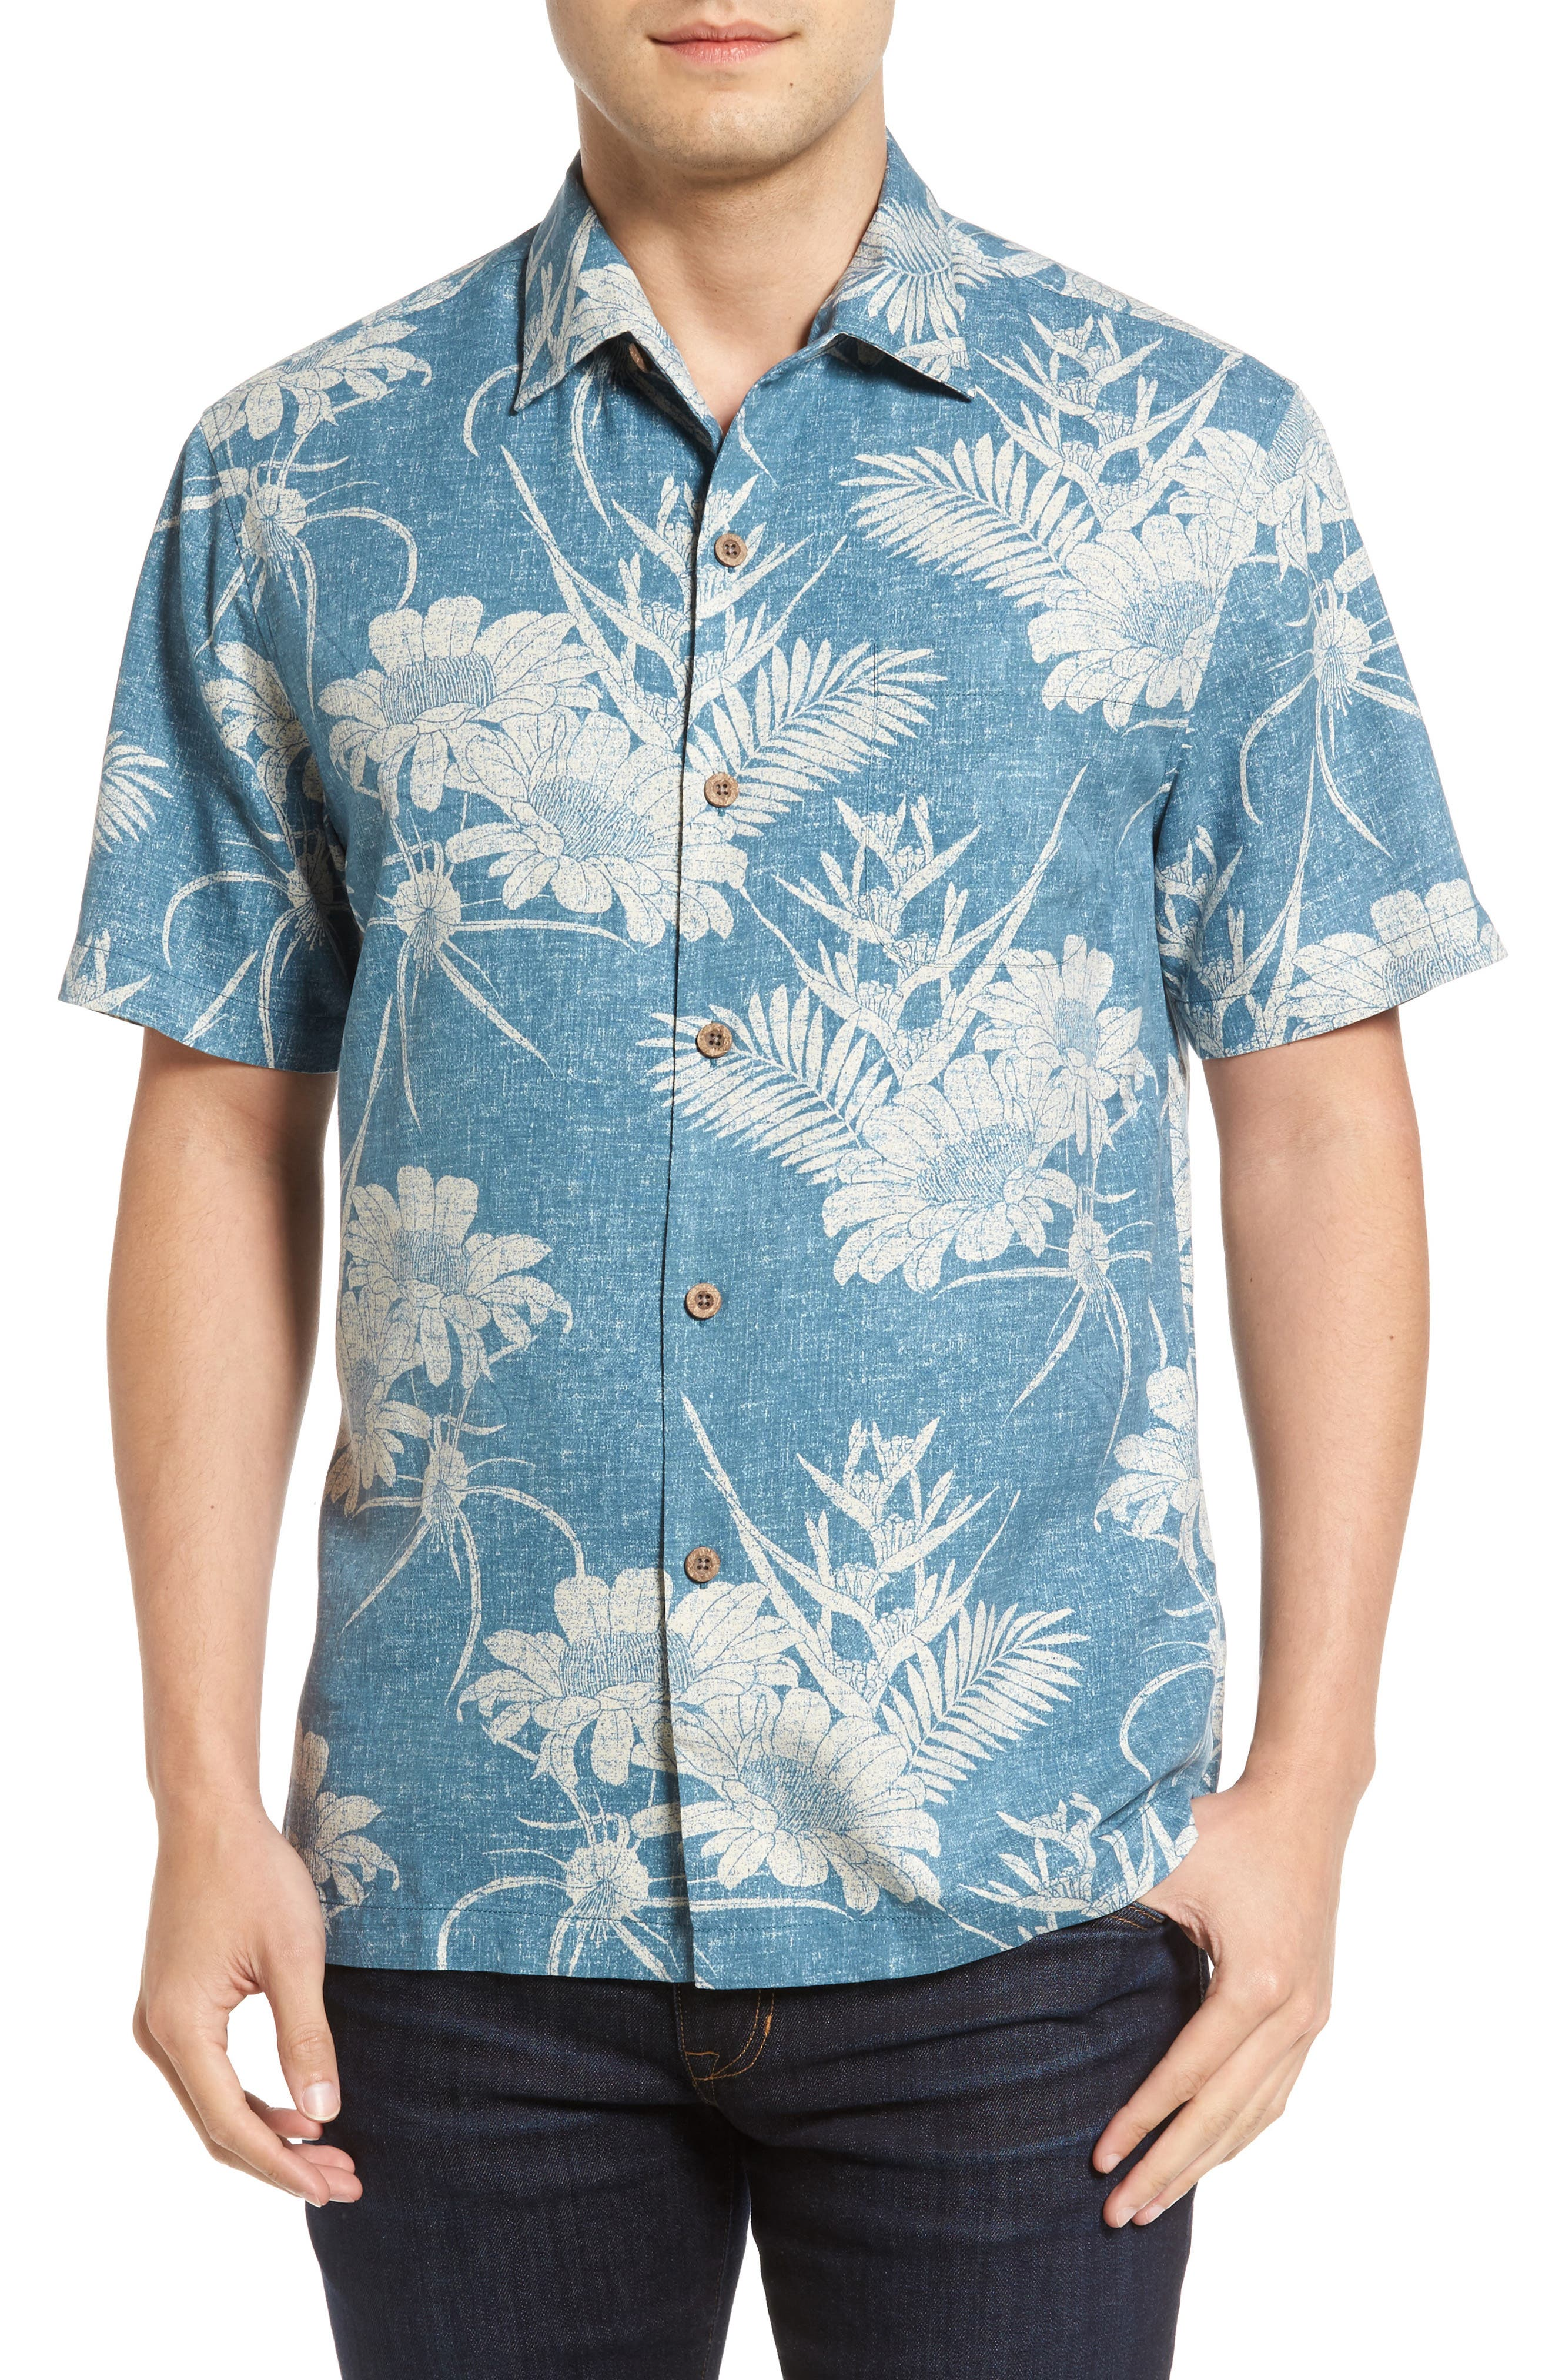 Main Image - Tommy Bahama Sand Torini Blooms Standard Fit Silk Blend Camp Shirt